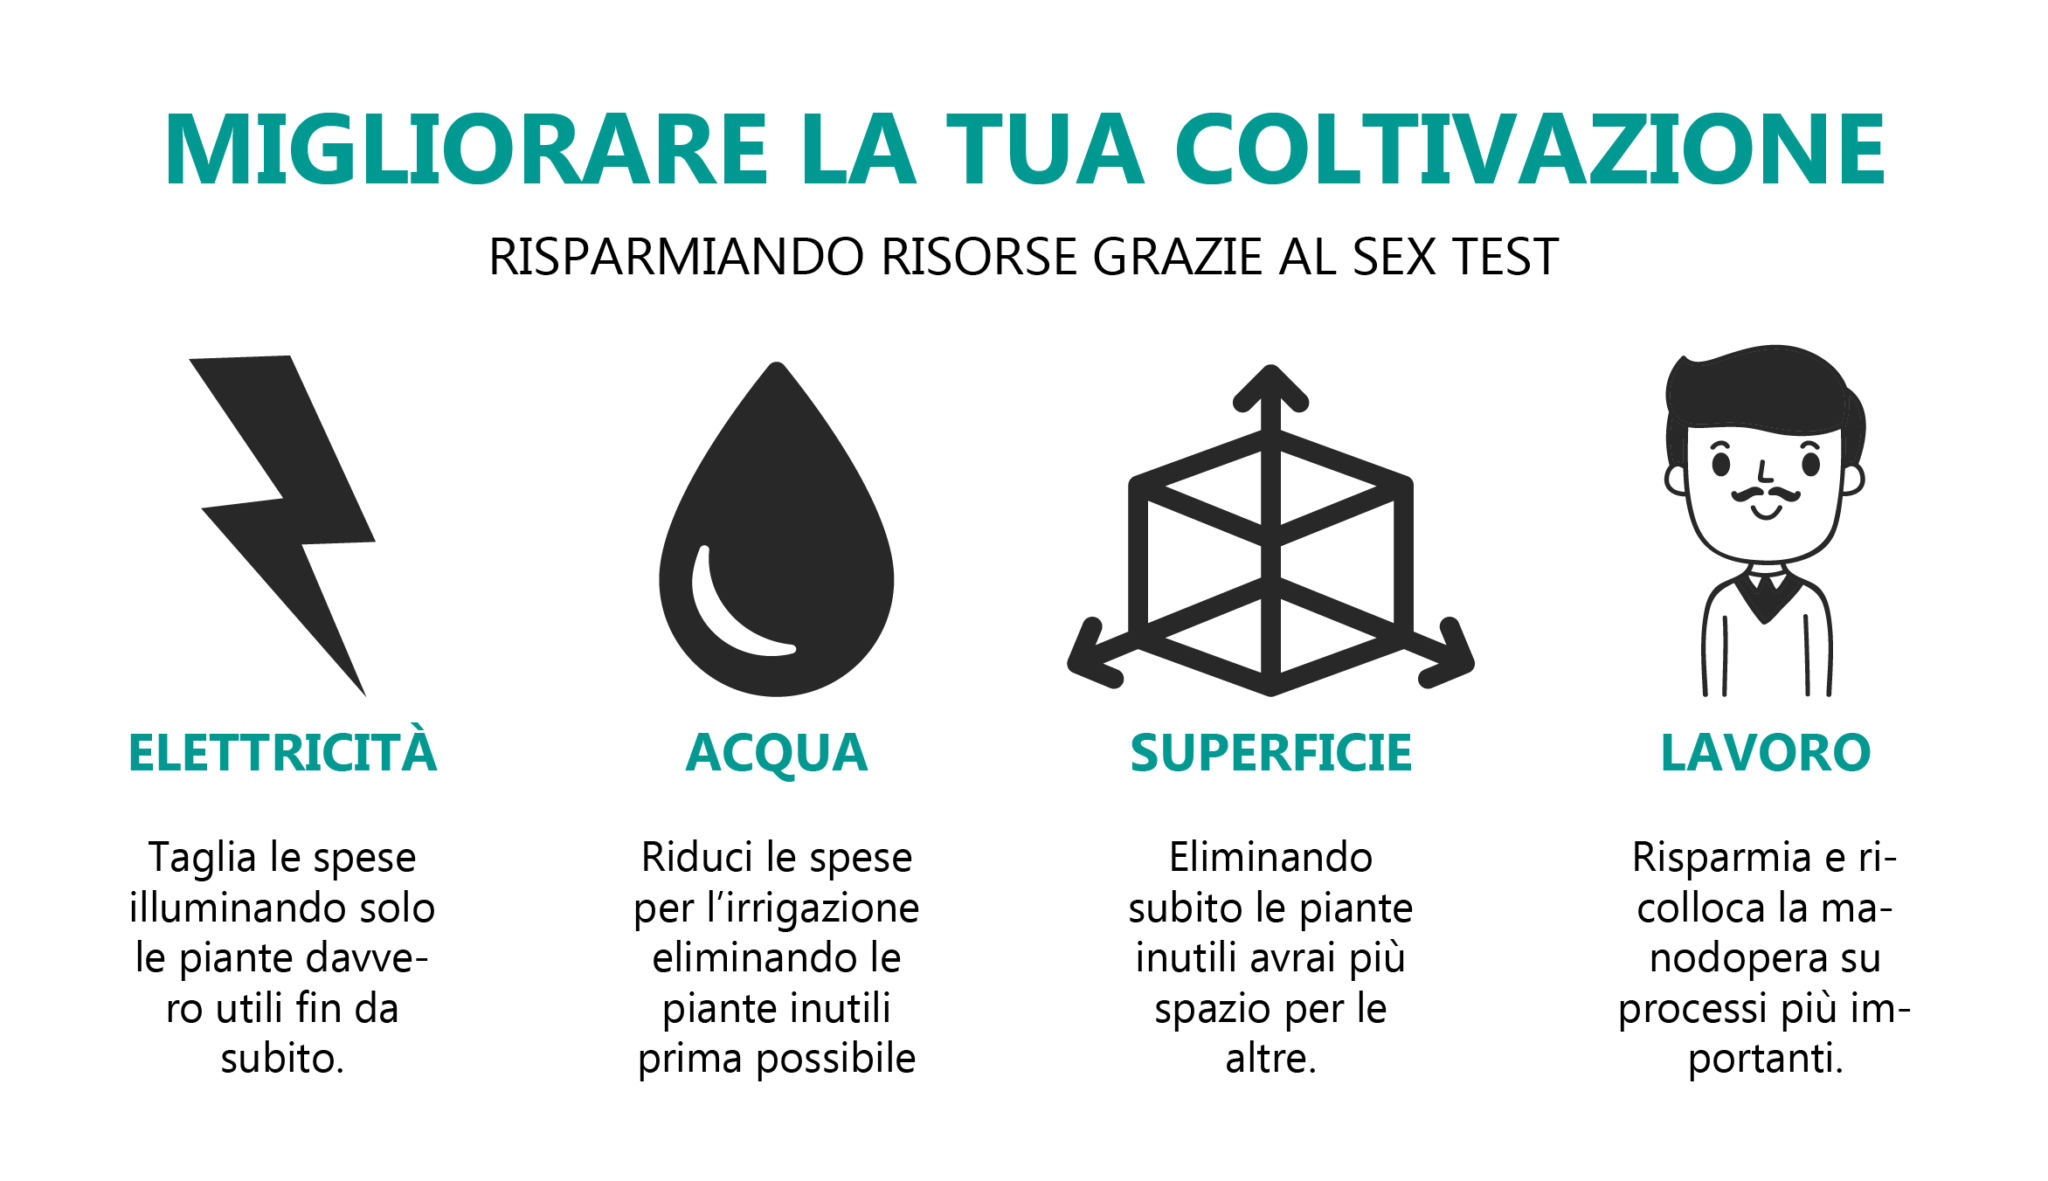 sex-test-efficienza-risorse-coltivazione